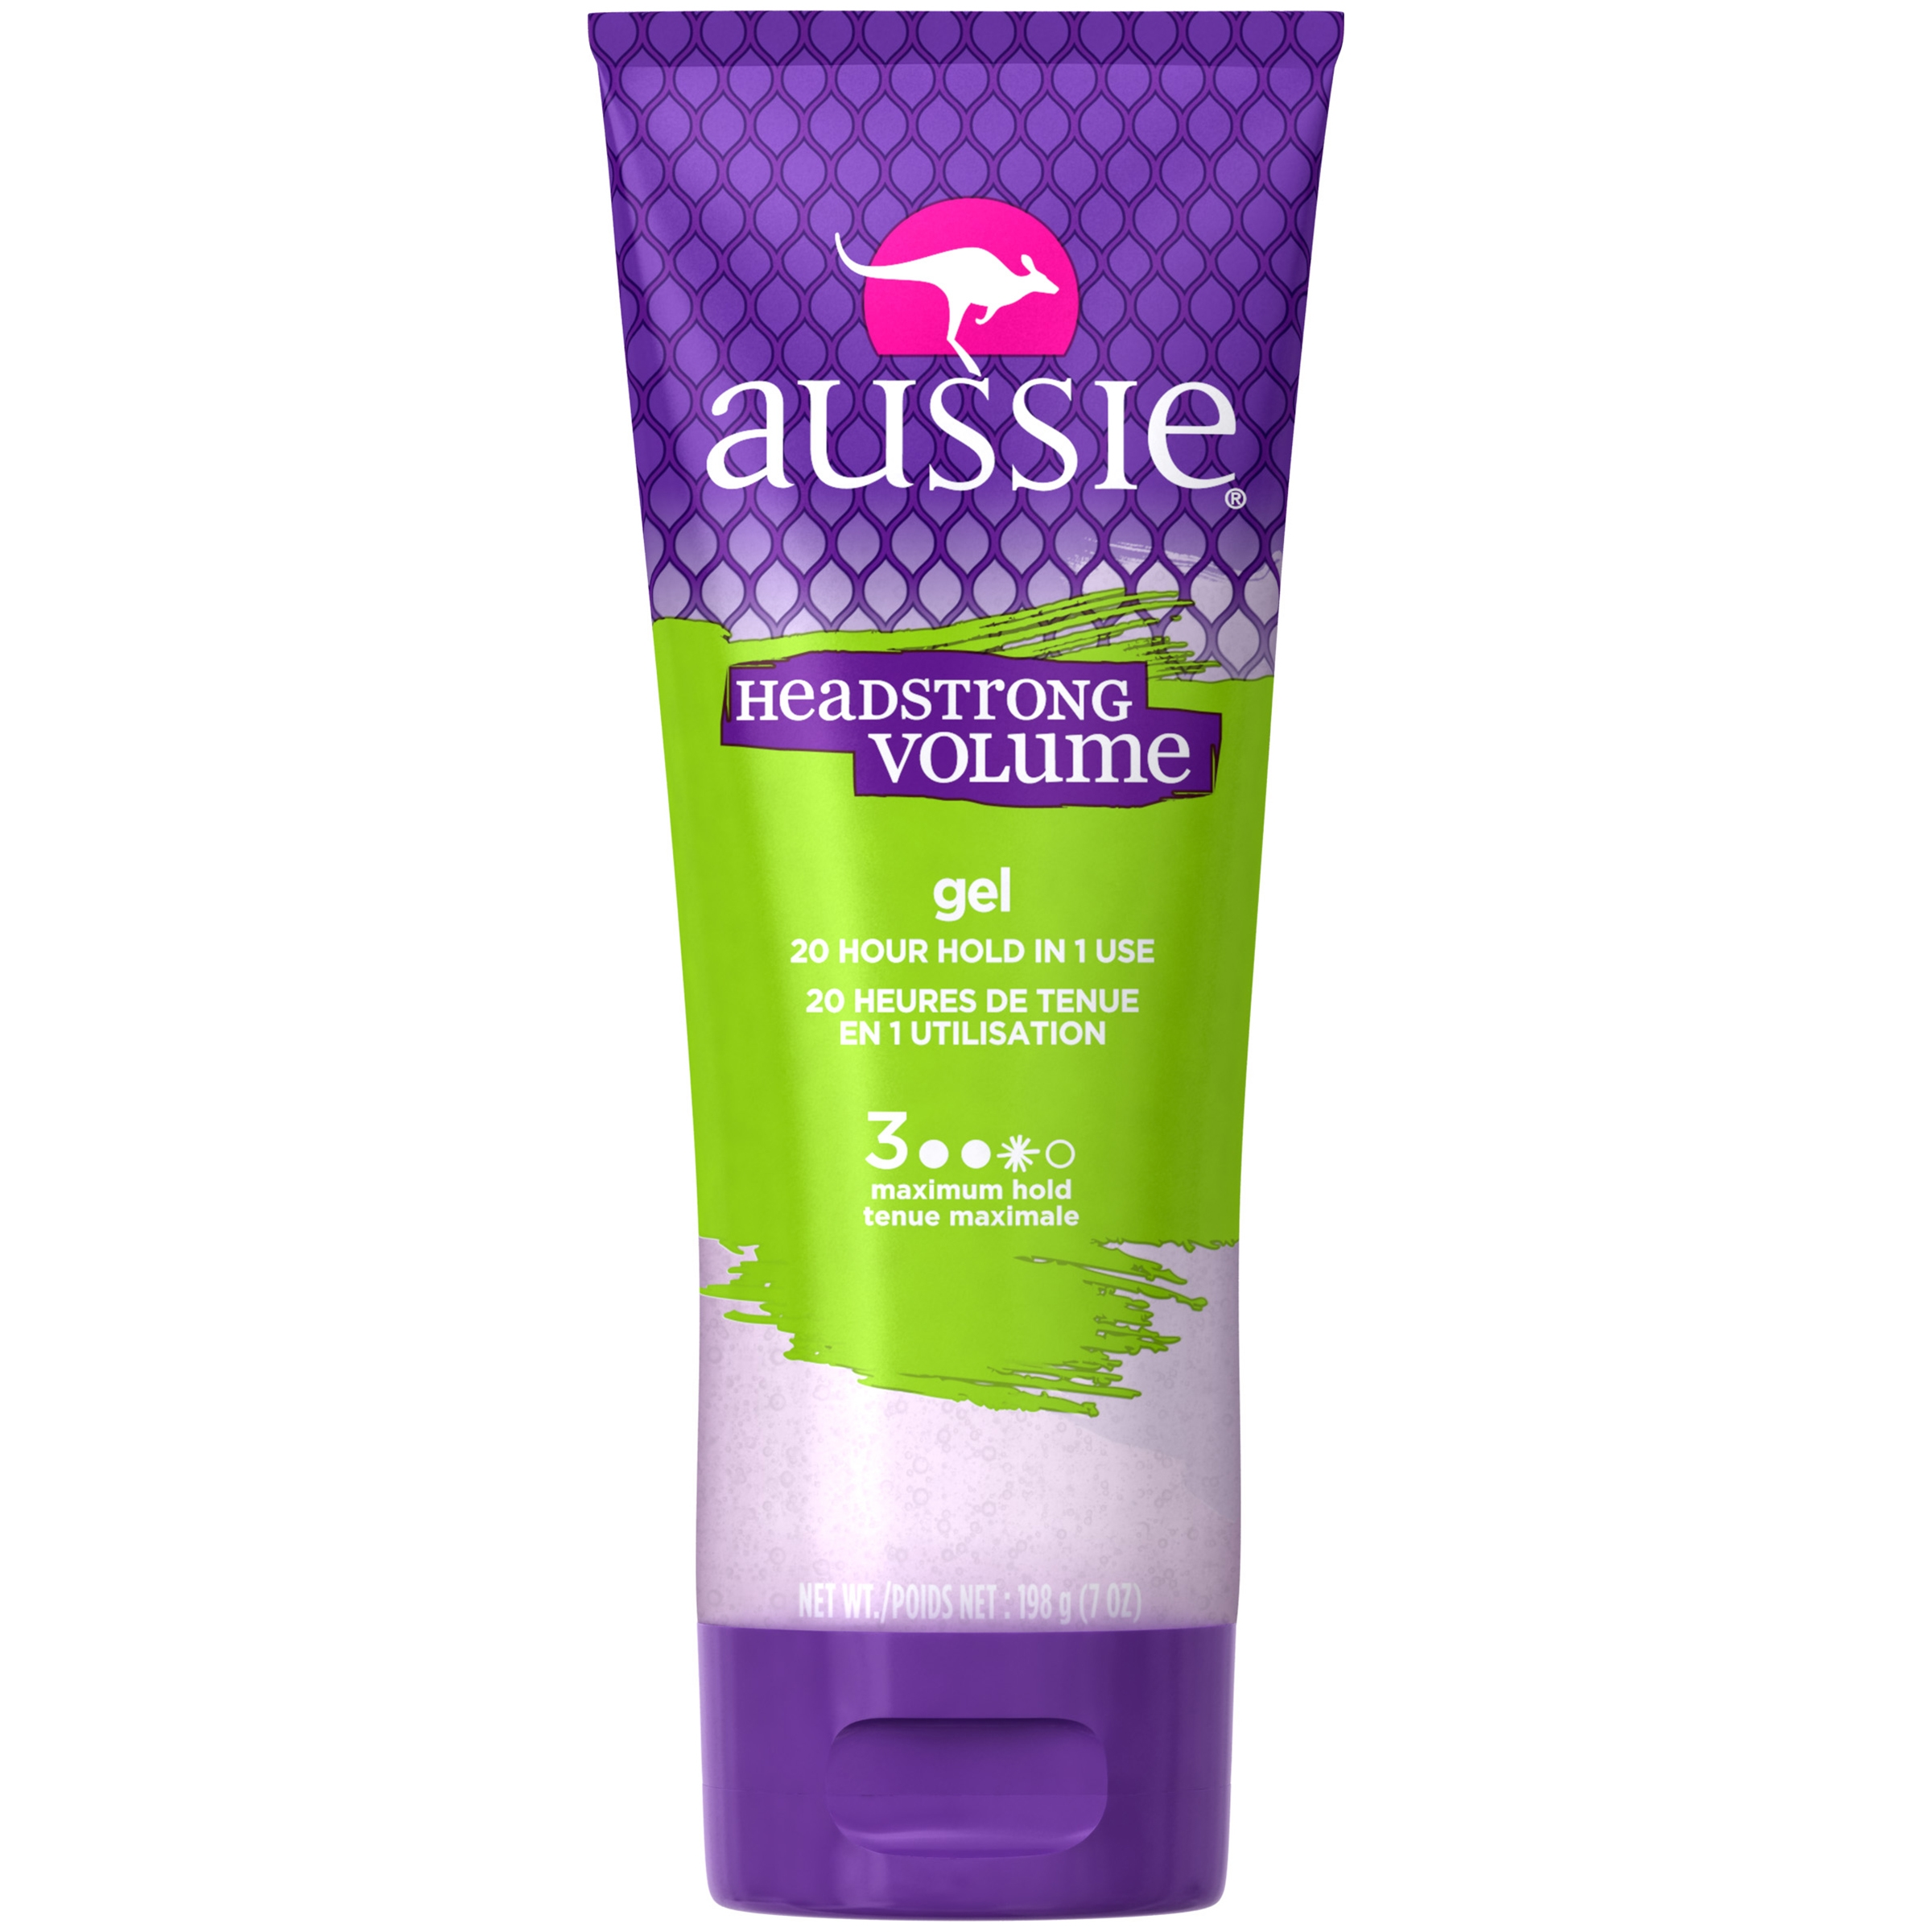 Aussie® Headstrong Volume Hair Gel 7 oz. Tube